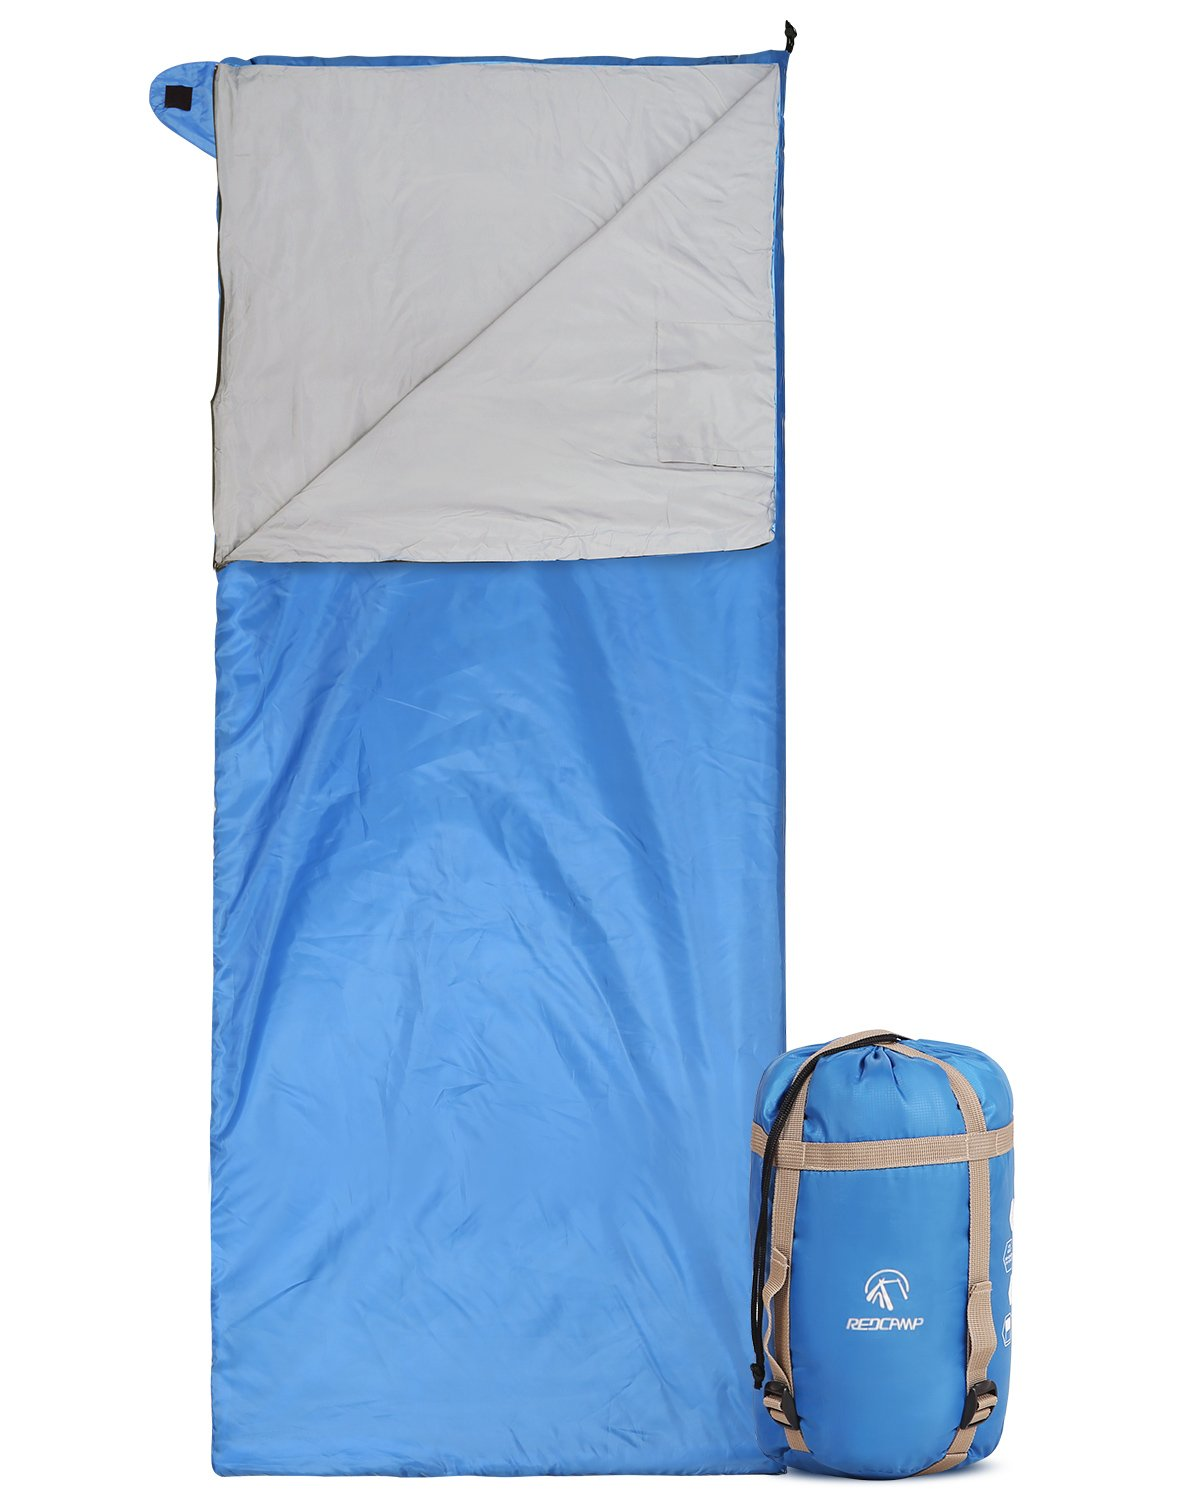 REDCAMP Ultra Lightweight Sleeping Bag for Backpacking, Comfort for Adults Warm Weather, with Compression Sack 3